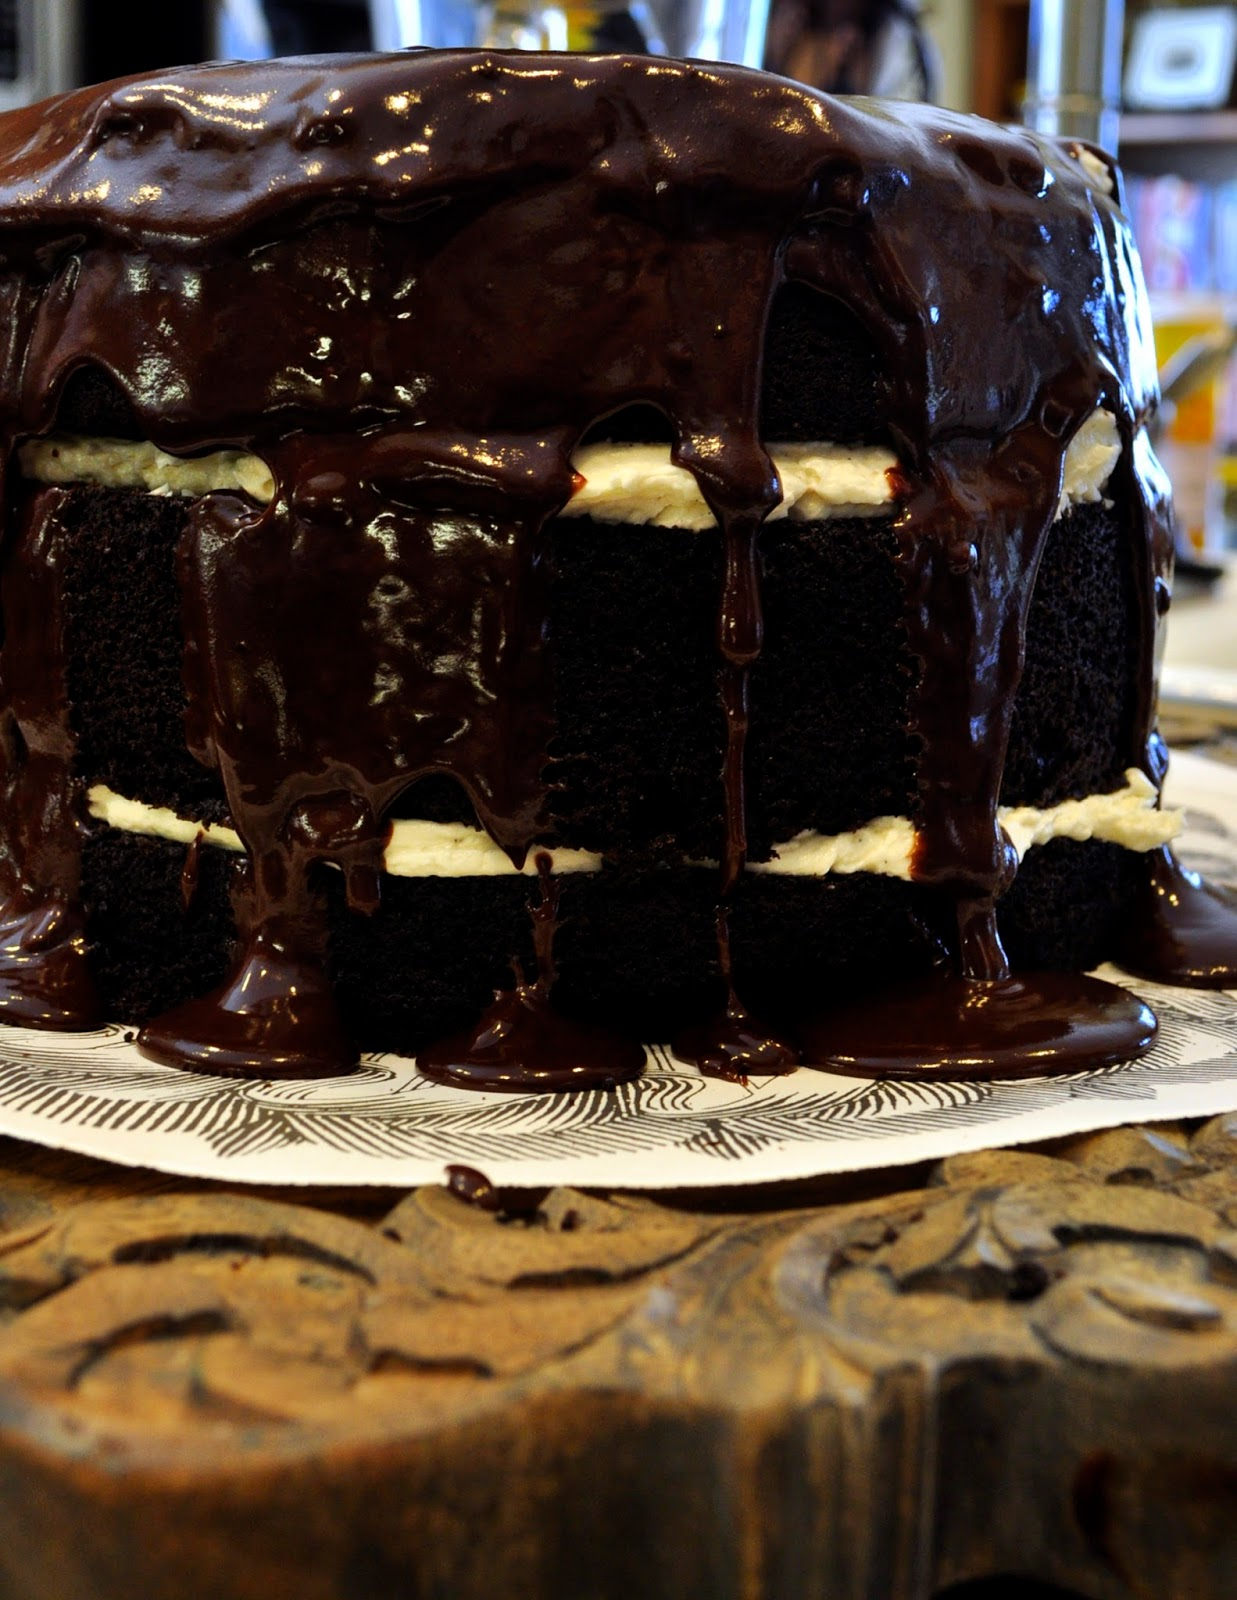 ... Sunday Mornings: Mile-High Chocolate Cake With Vanilla Buttercream